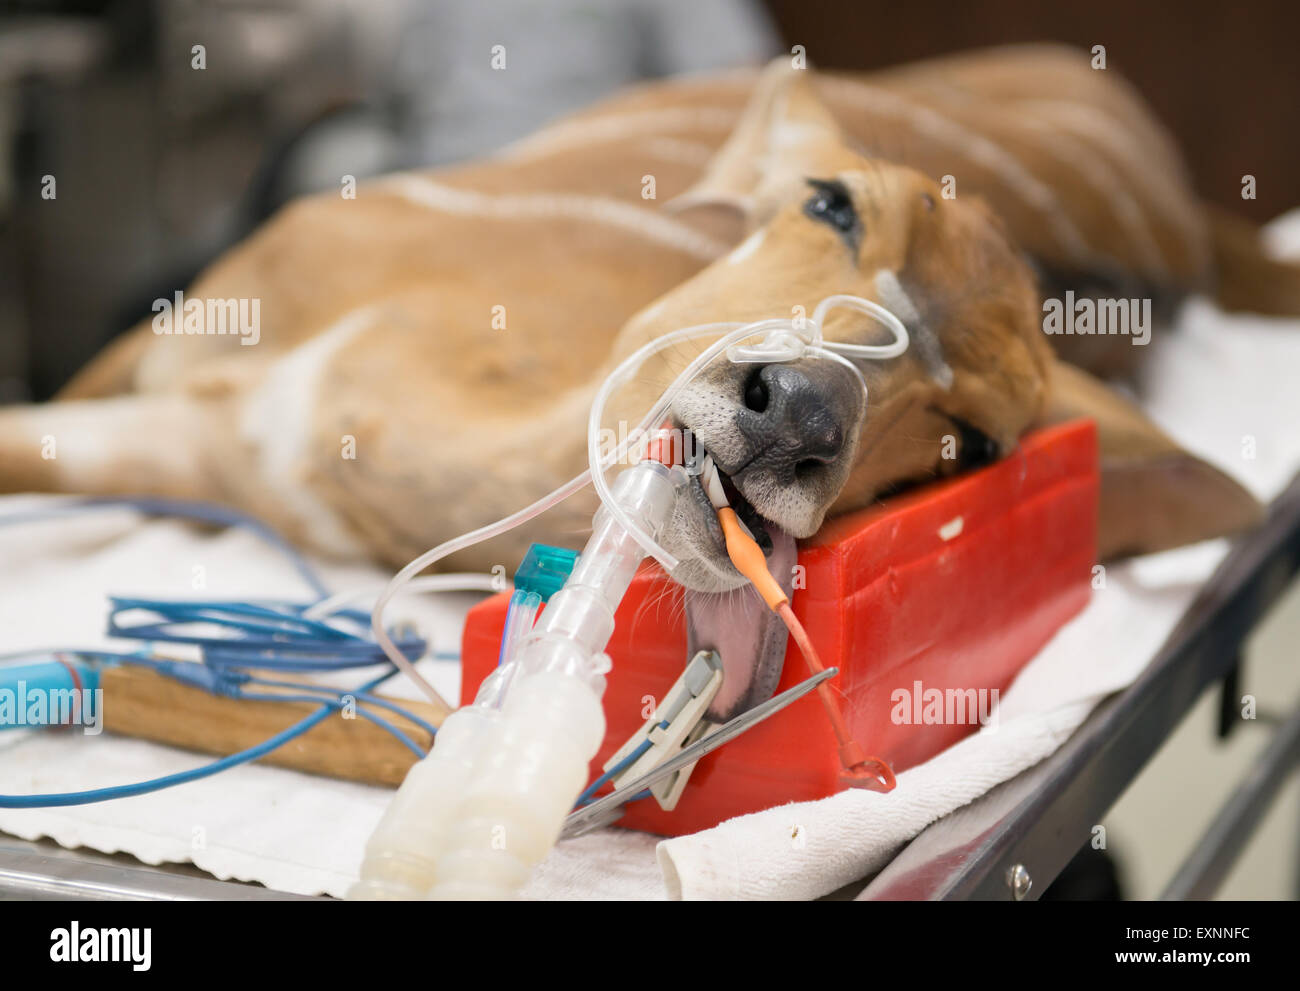 Veterinarian performing an operation on a nyala in the operating room - Stock Image